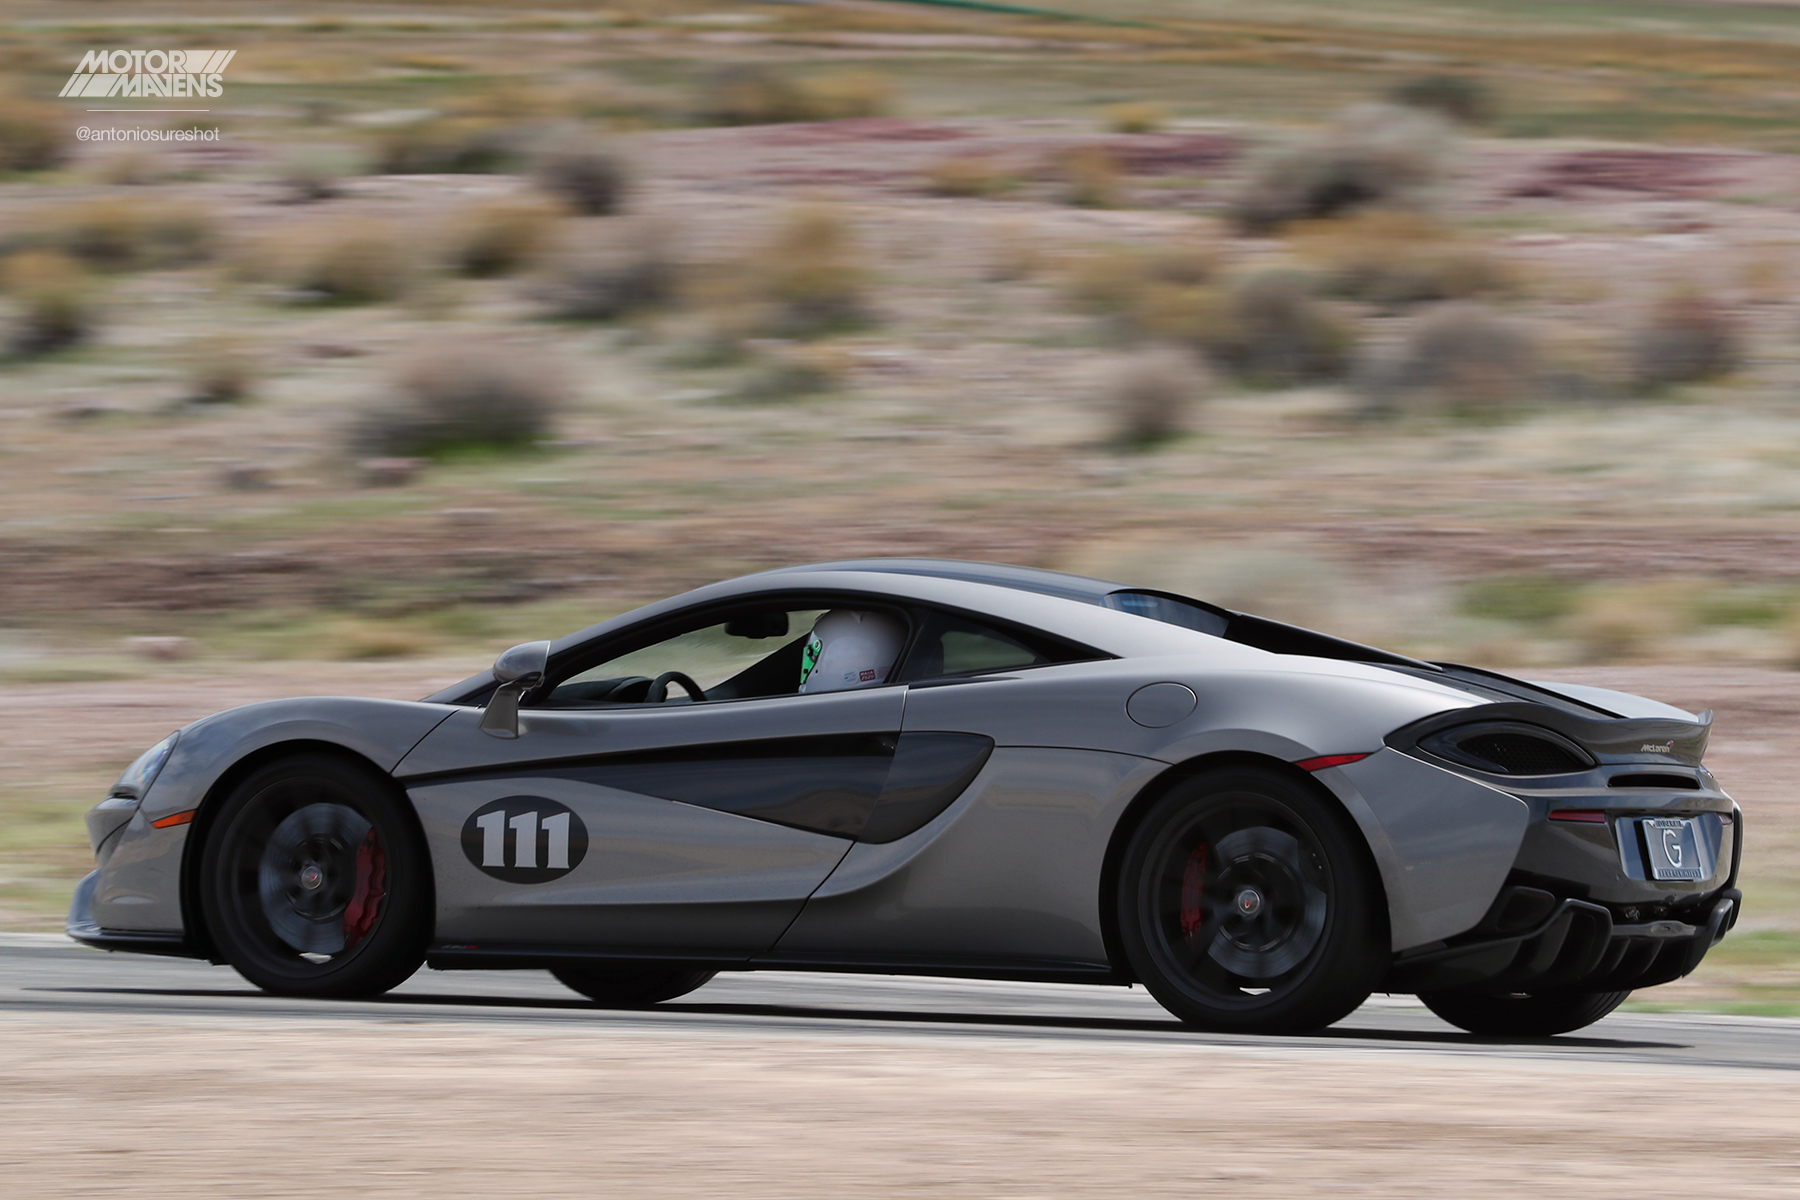 Mclaren 570S, Willow Springs International Raceway